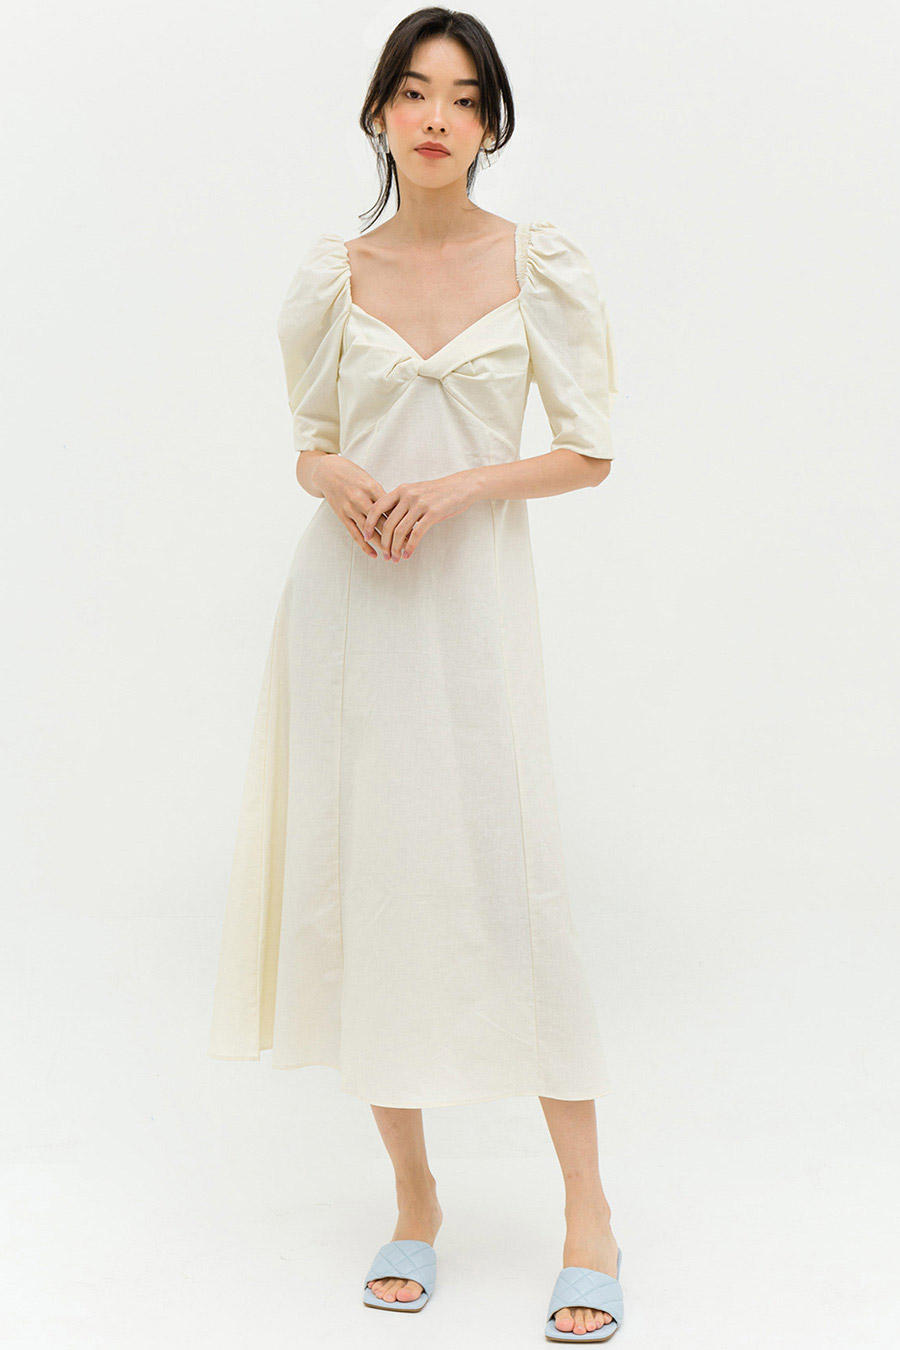 BERTINO DRESS - IVORY